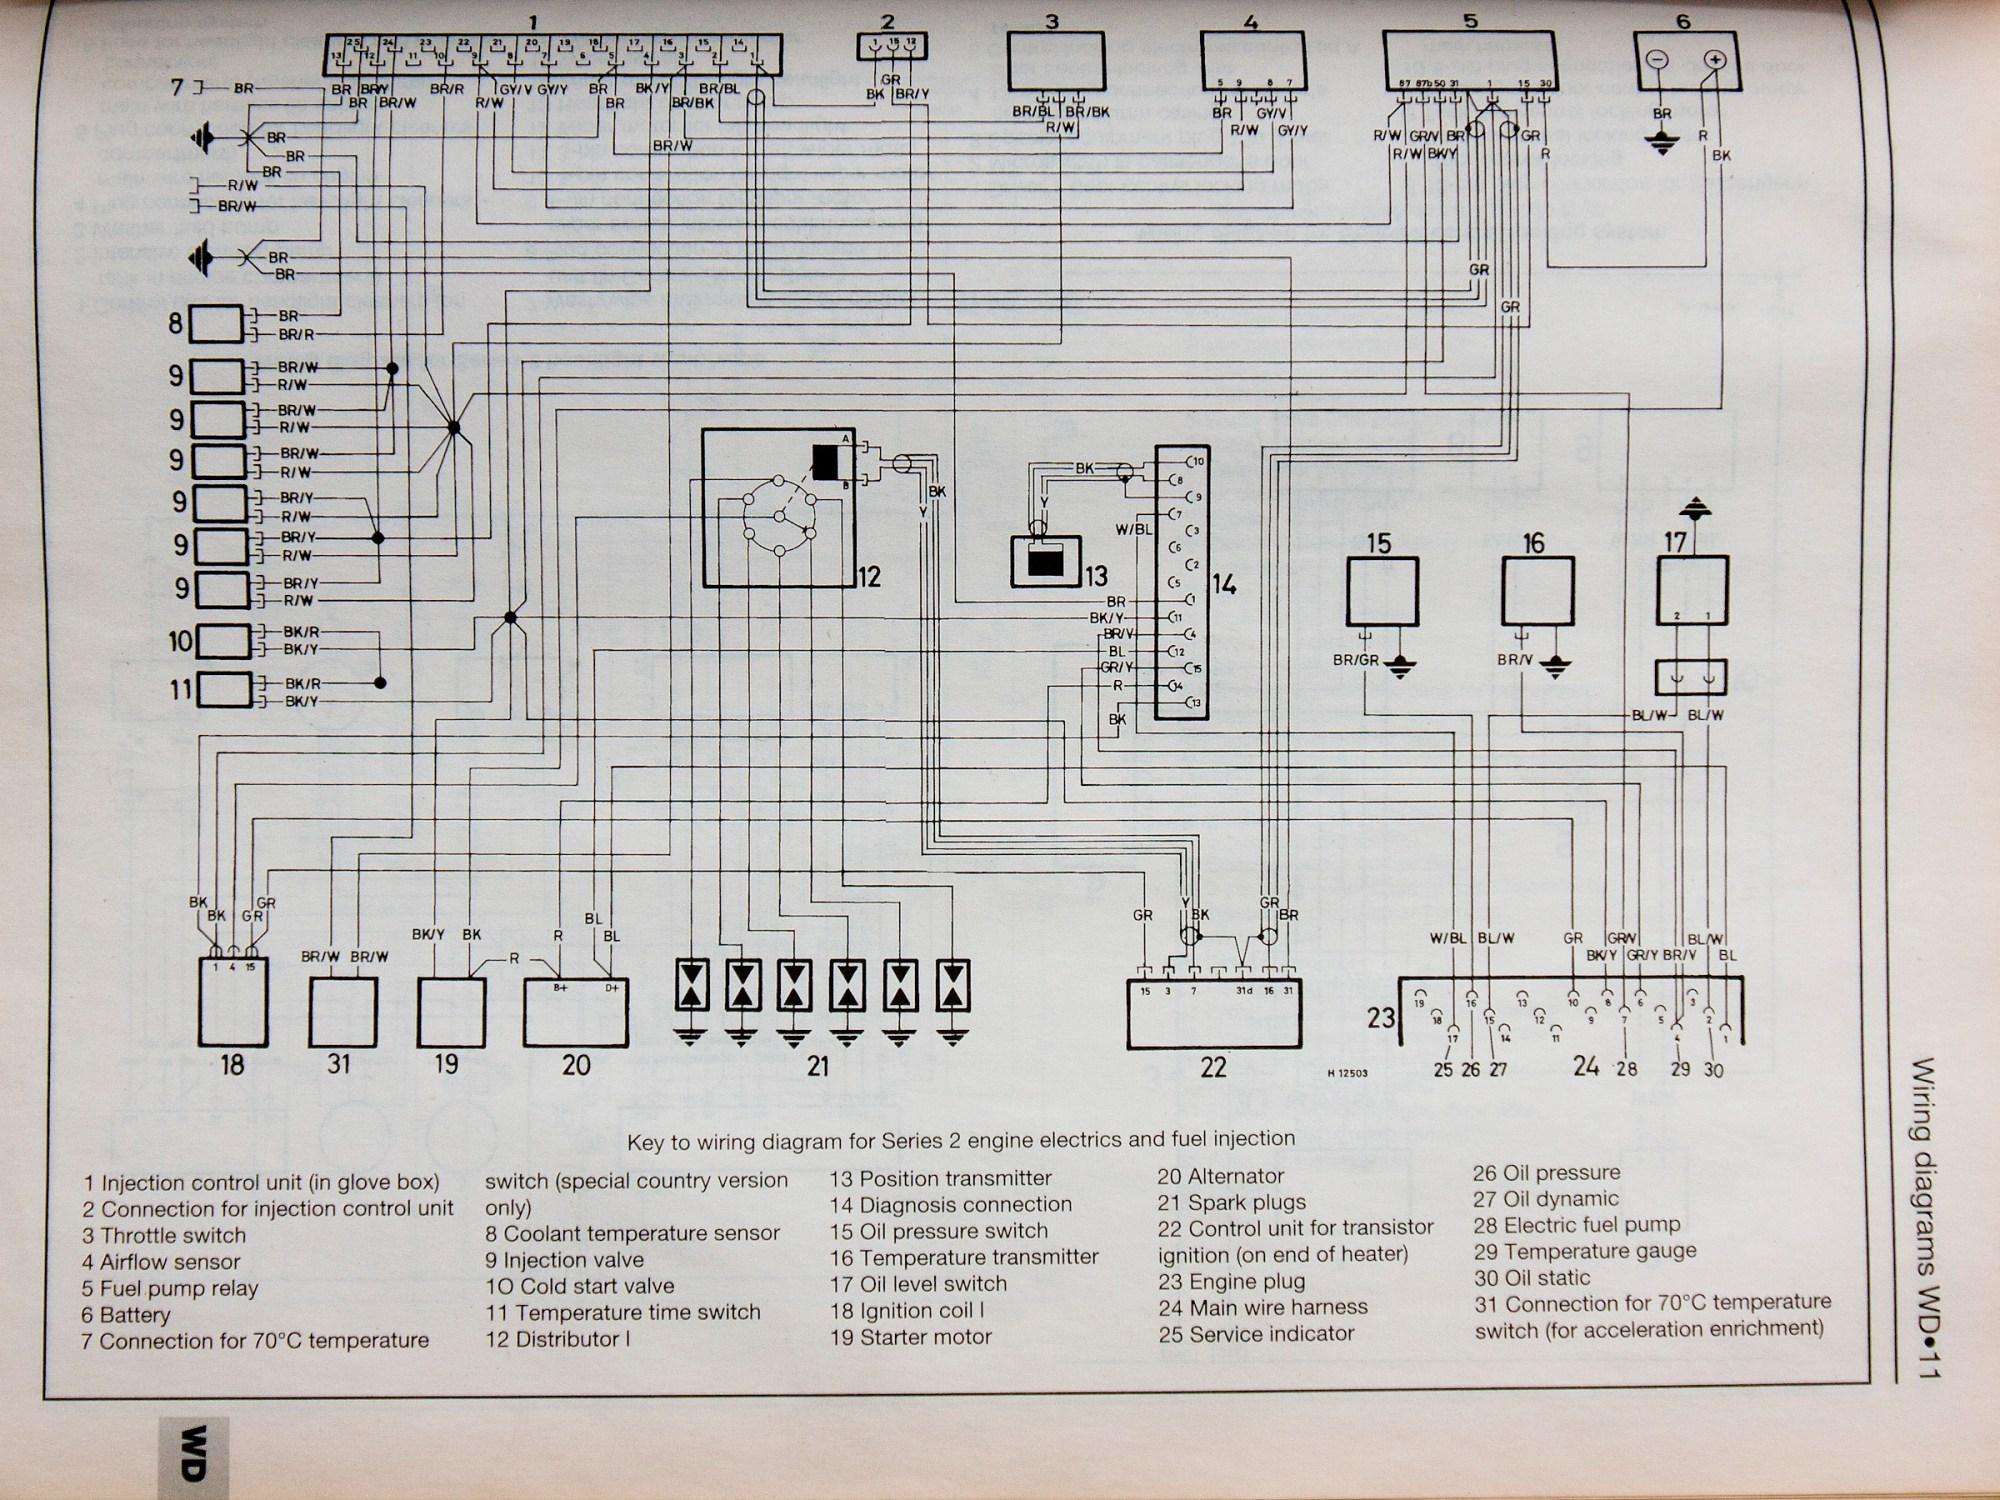 hight resolution of e21 wiring diagram wiring diagram third level super beetle wiring diagram bmw e21 wiring diagram